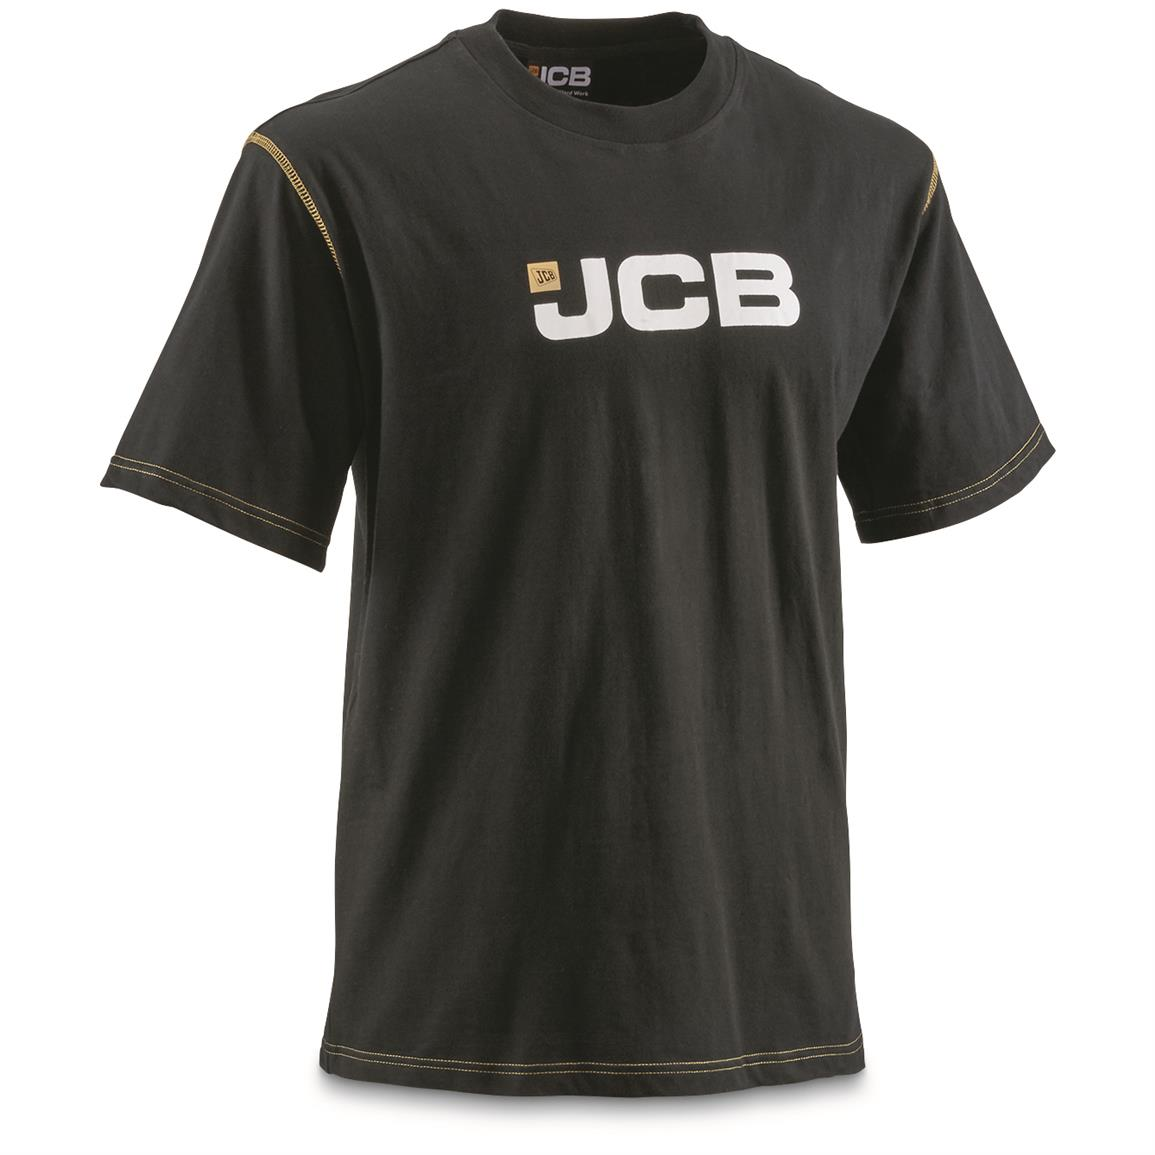 JCB Military Contractor Workwear T-Shirt, New, Black